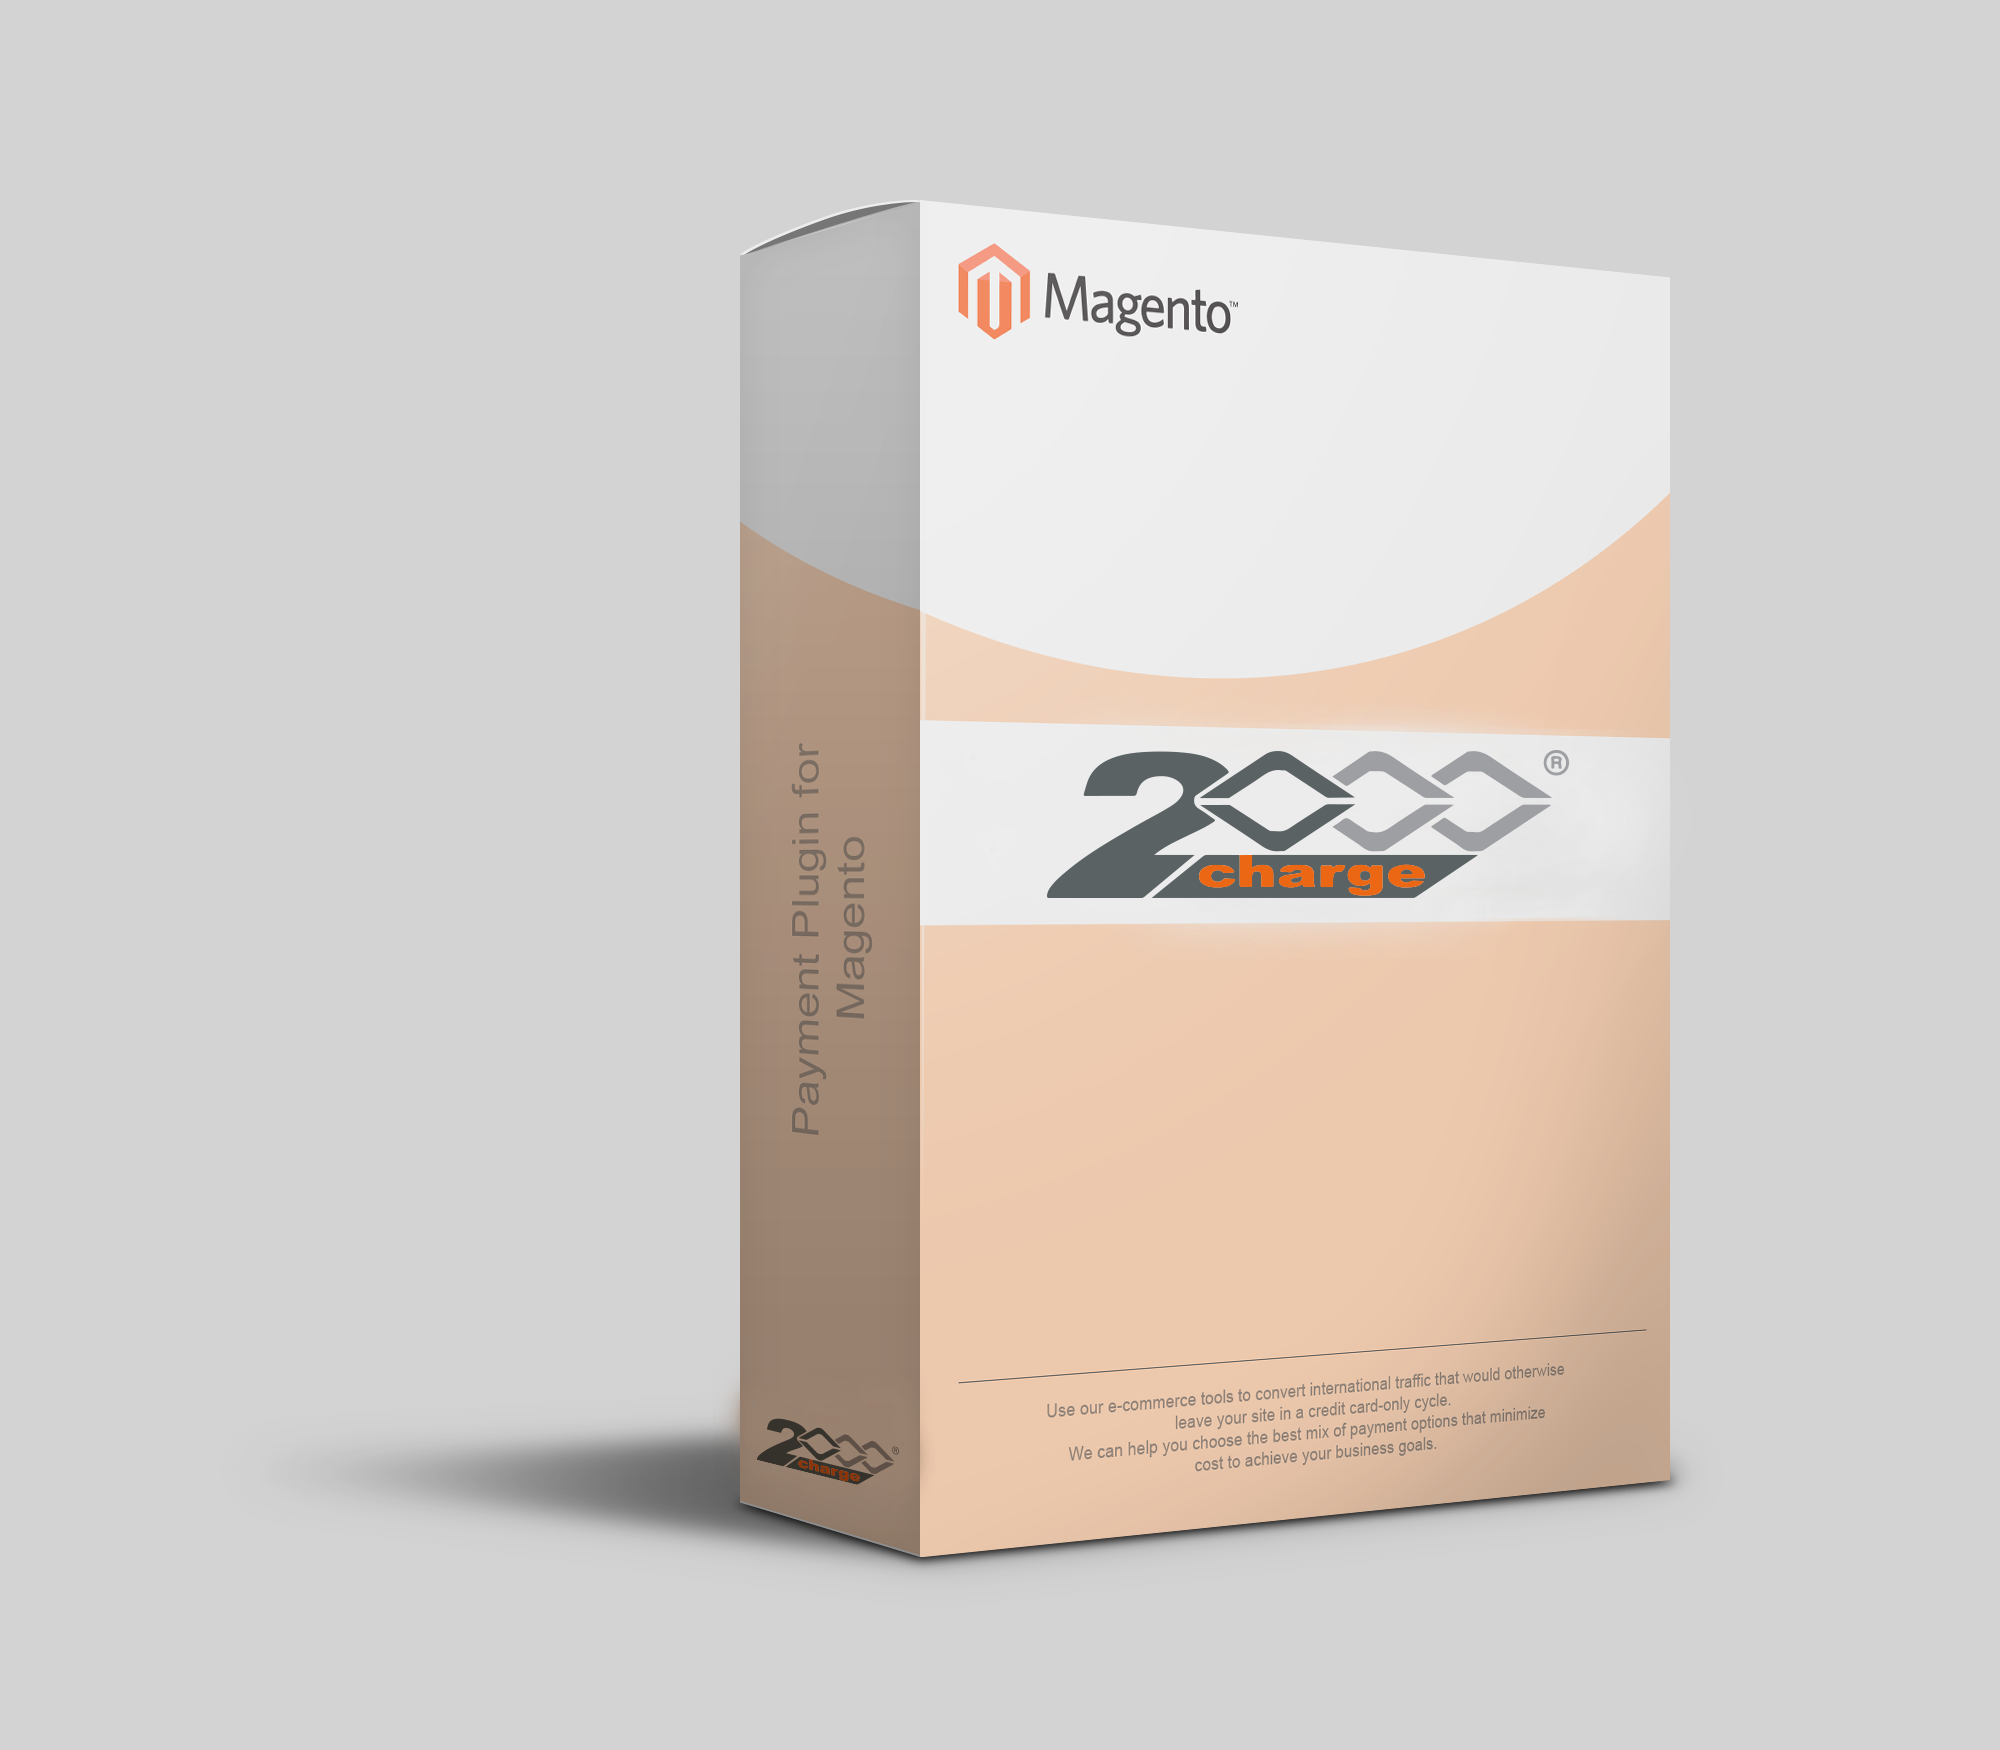 2000Charge Magento Module